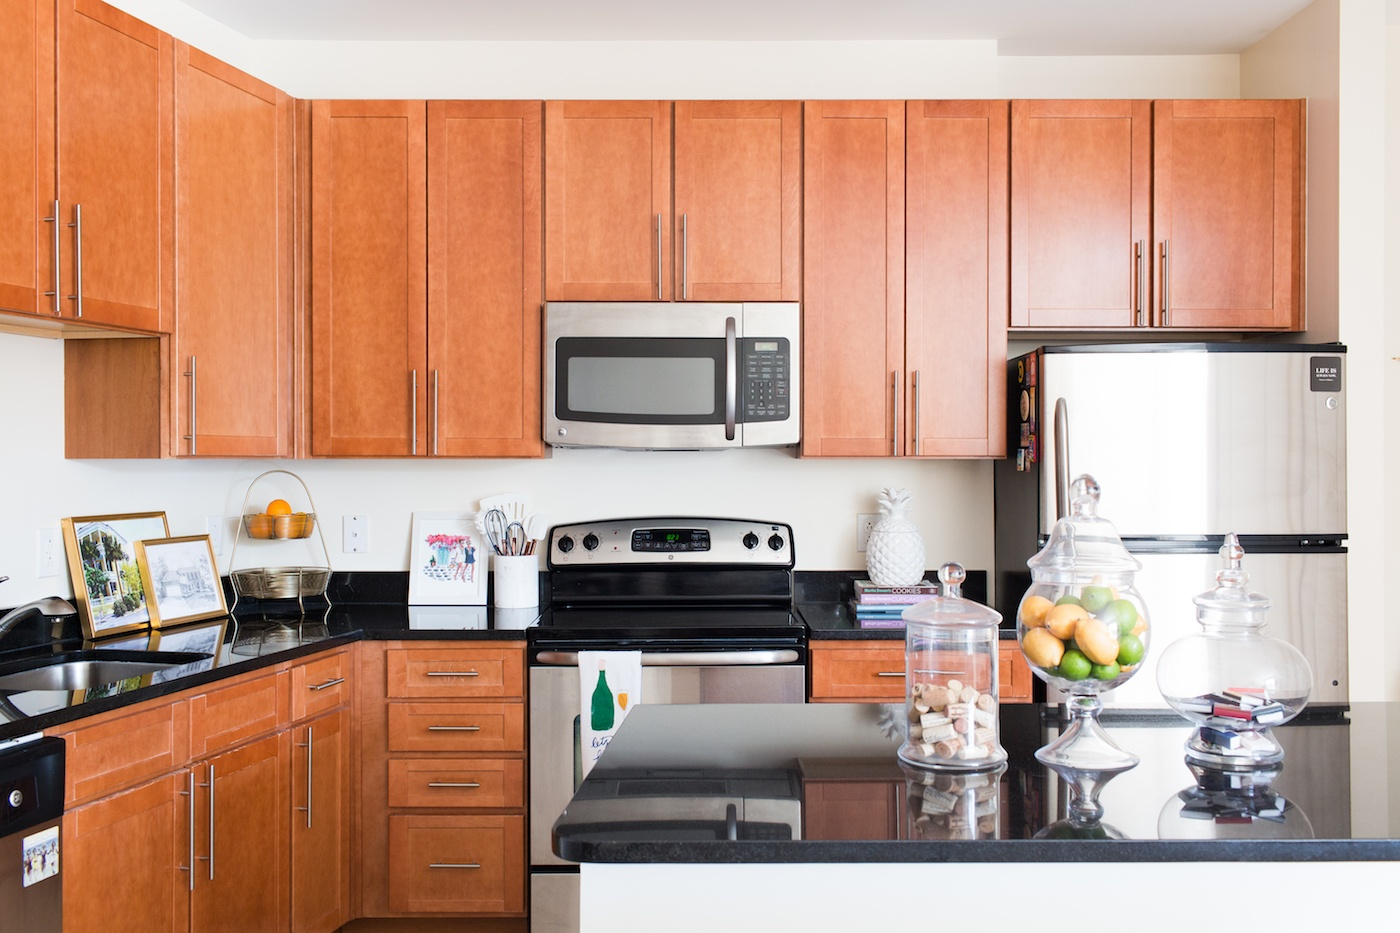 Apartment Kitchen Decor Ideas 8 A Touch Of Teal